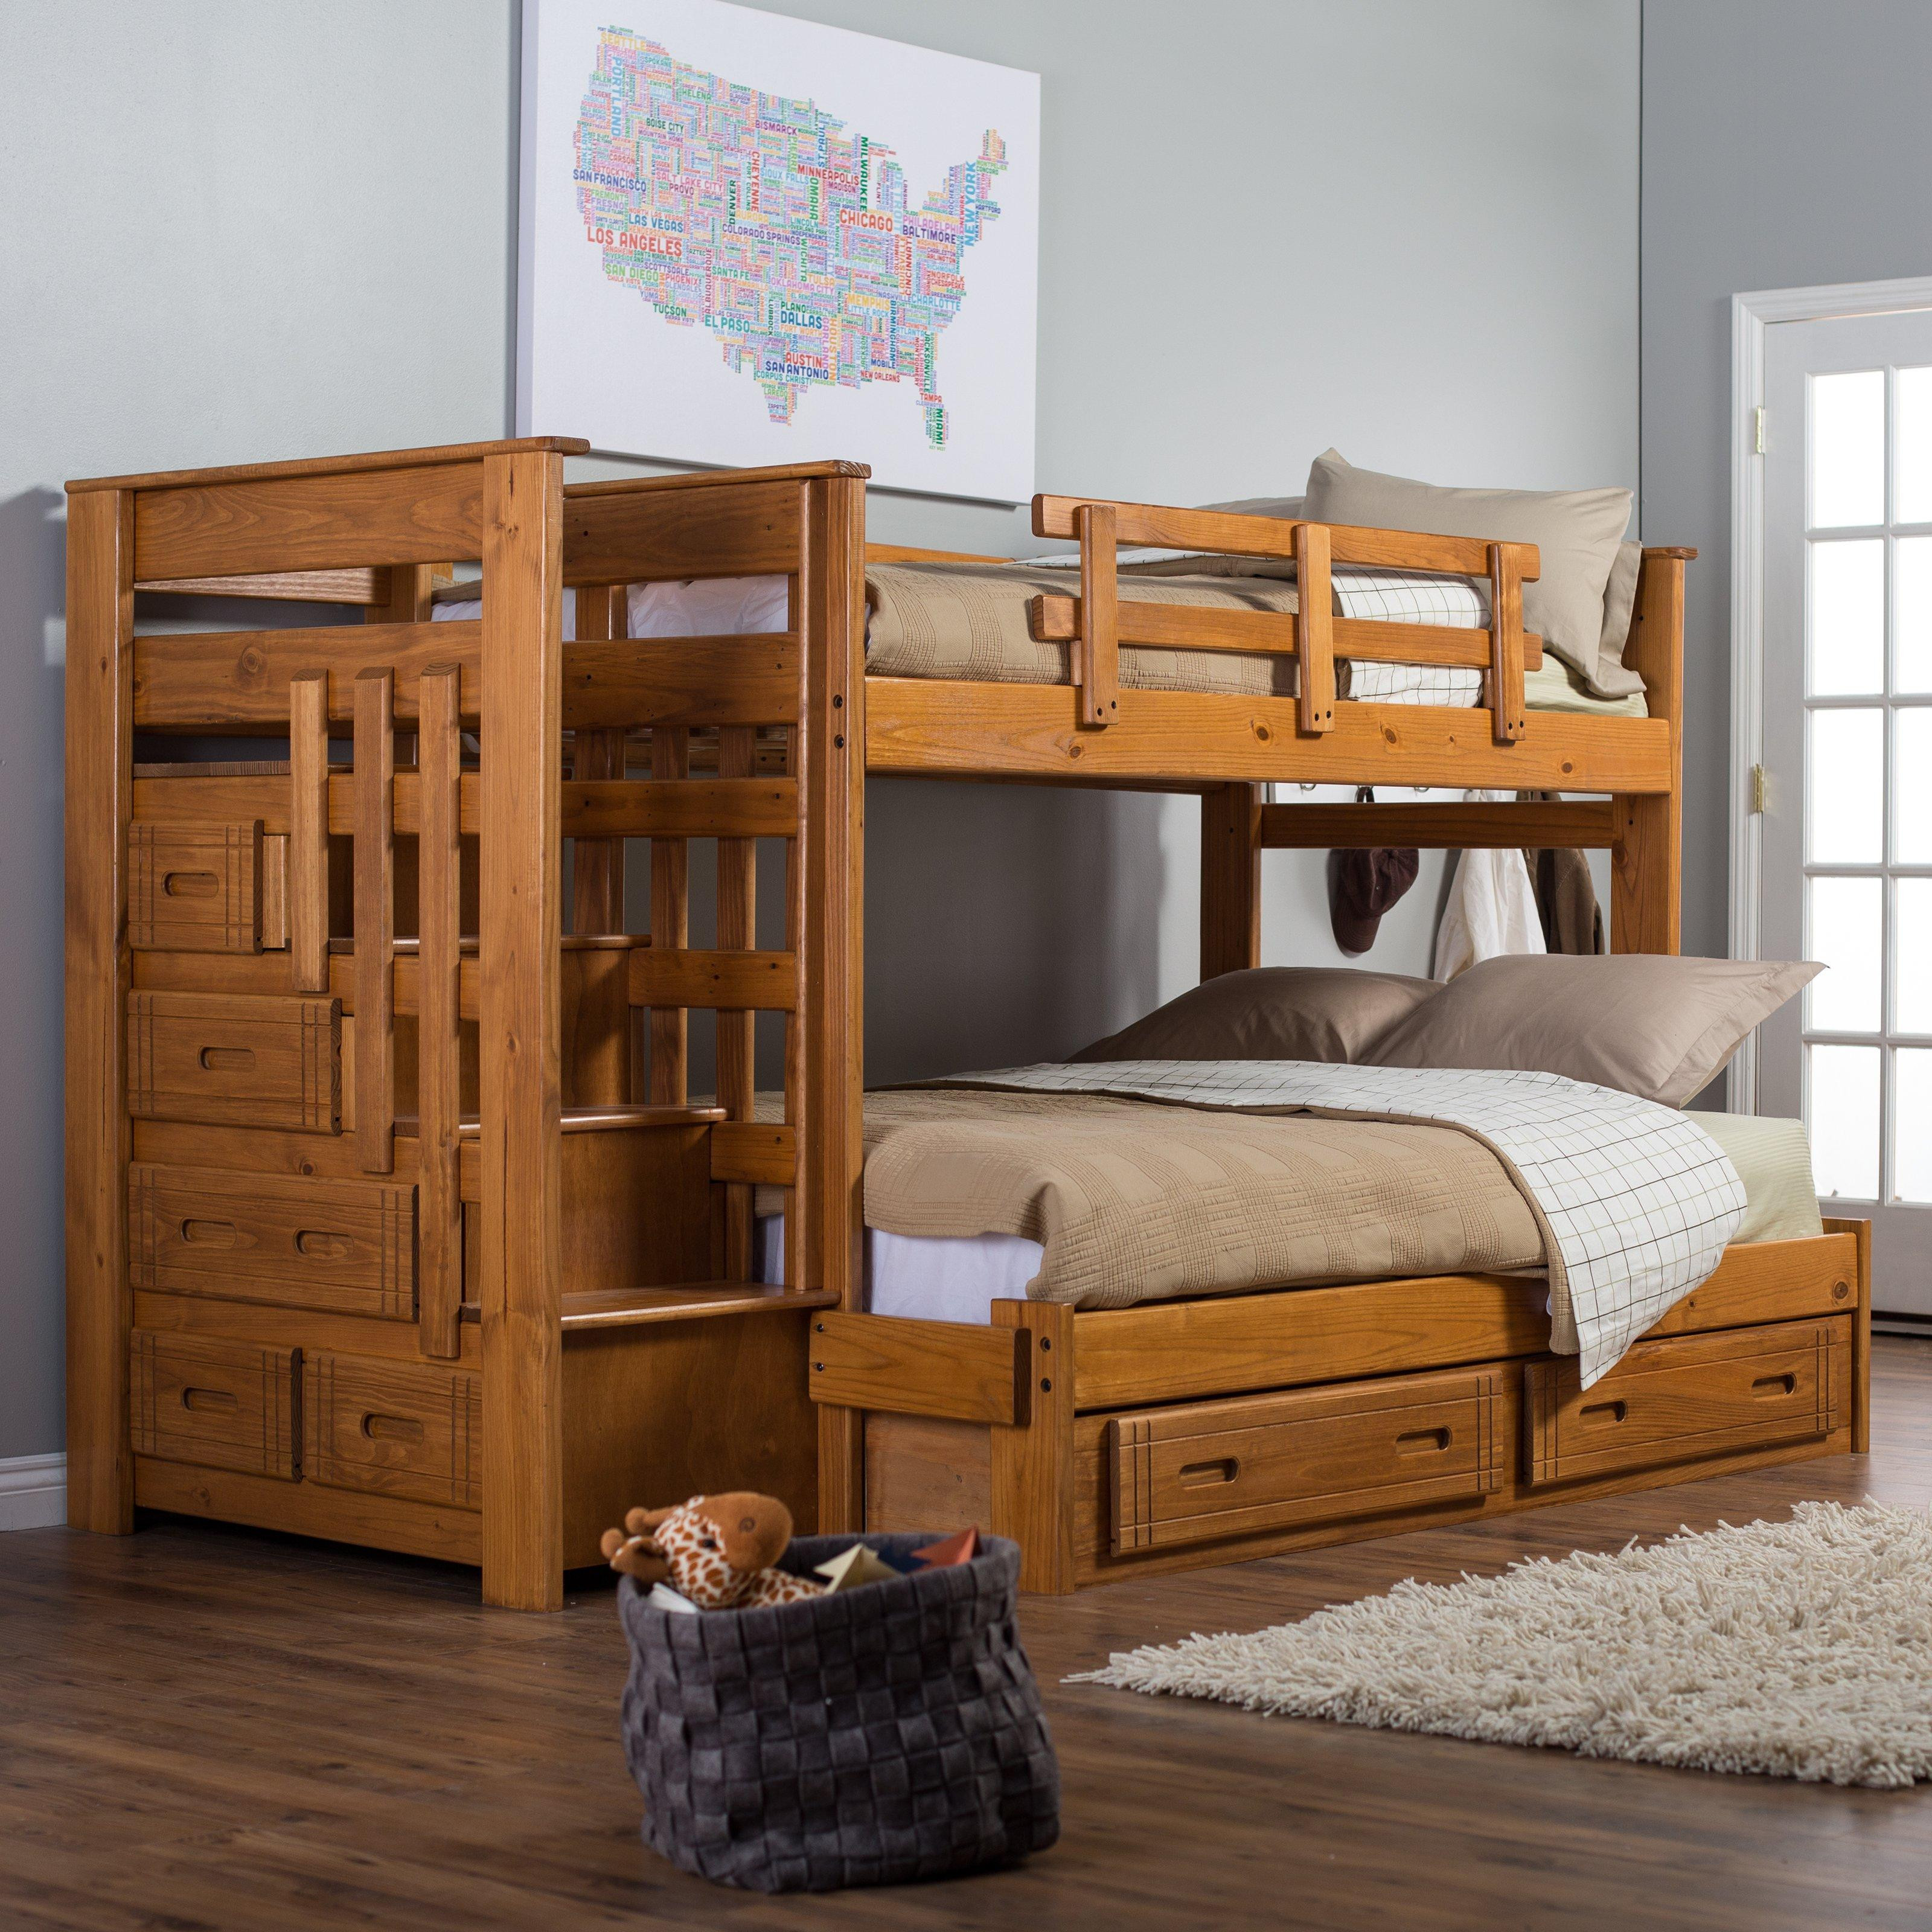 Best ideas about DIY Twin Over Full Bunk Bed . Save or Pin Bedroom Charming Rustic Bunk Beds For Your Unique Bedroom Now.